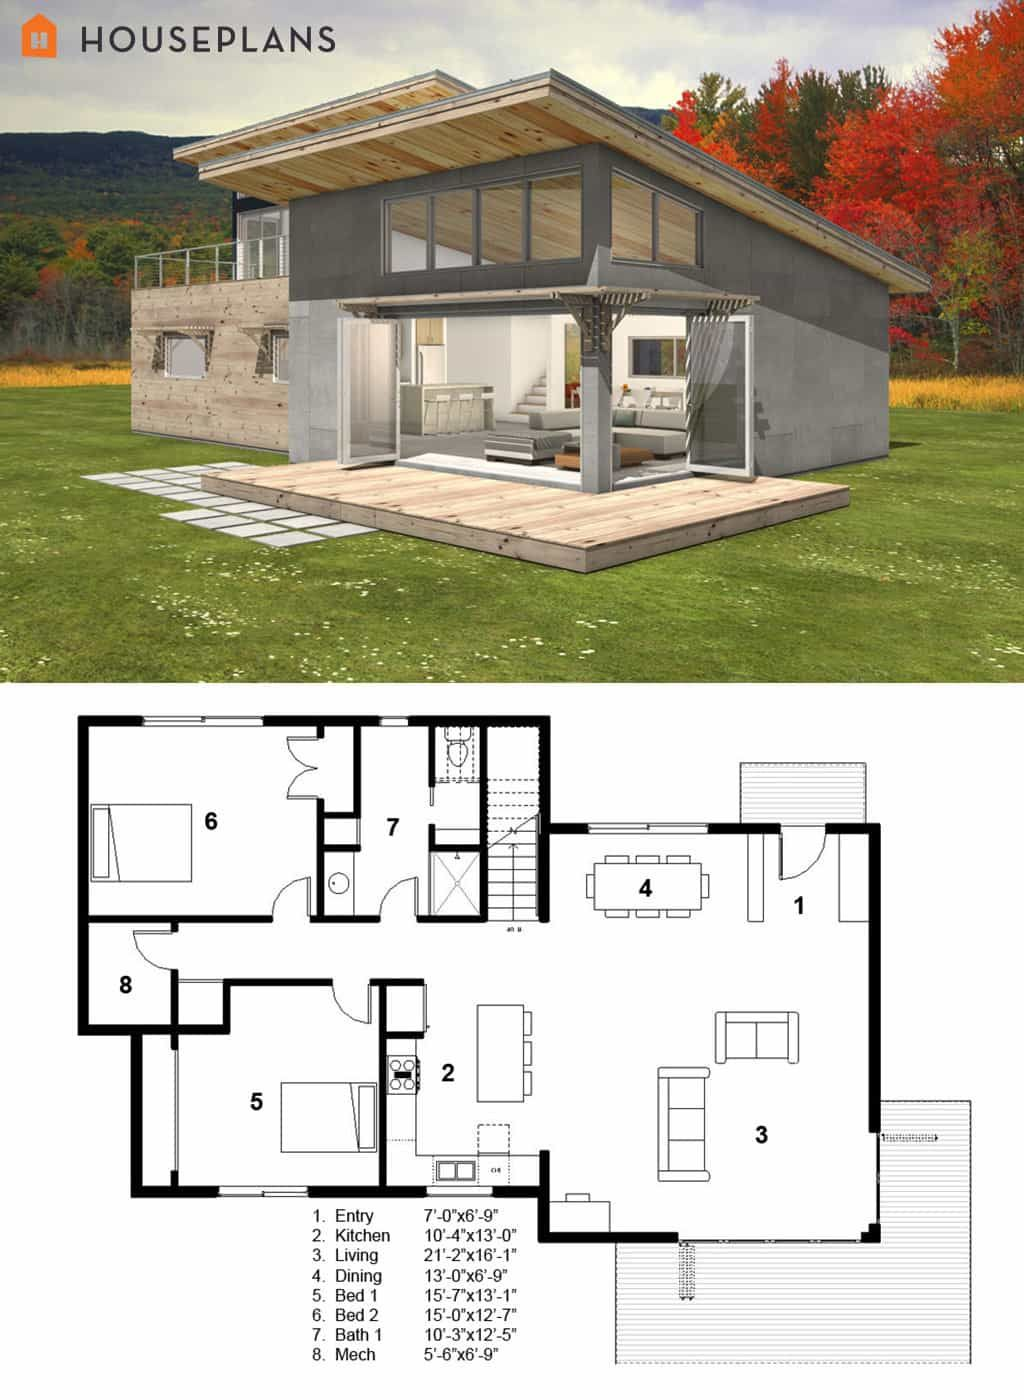 7 Modern House Plans Samples Modern Home 7 Mrn House Plans Samples Mrn Home Mrn House Plans Fea In 2020 Modern Style House Plans Small Modern Cabin Cabin House Plans